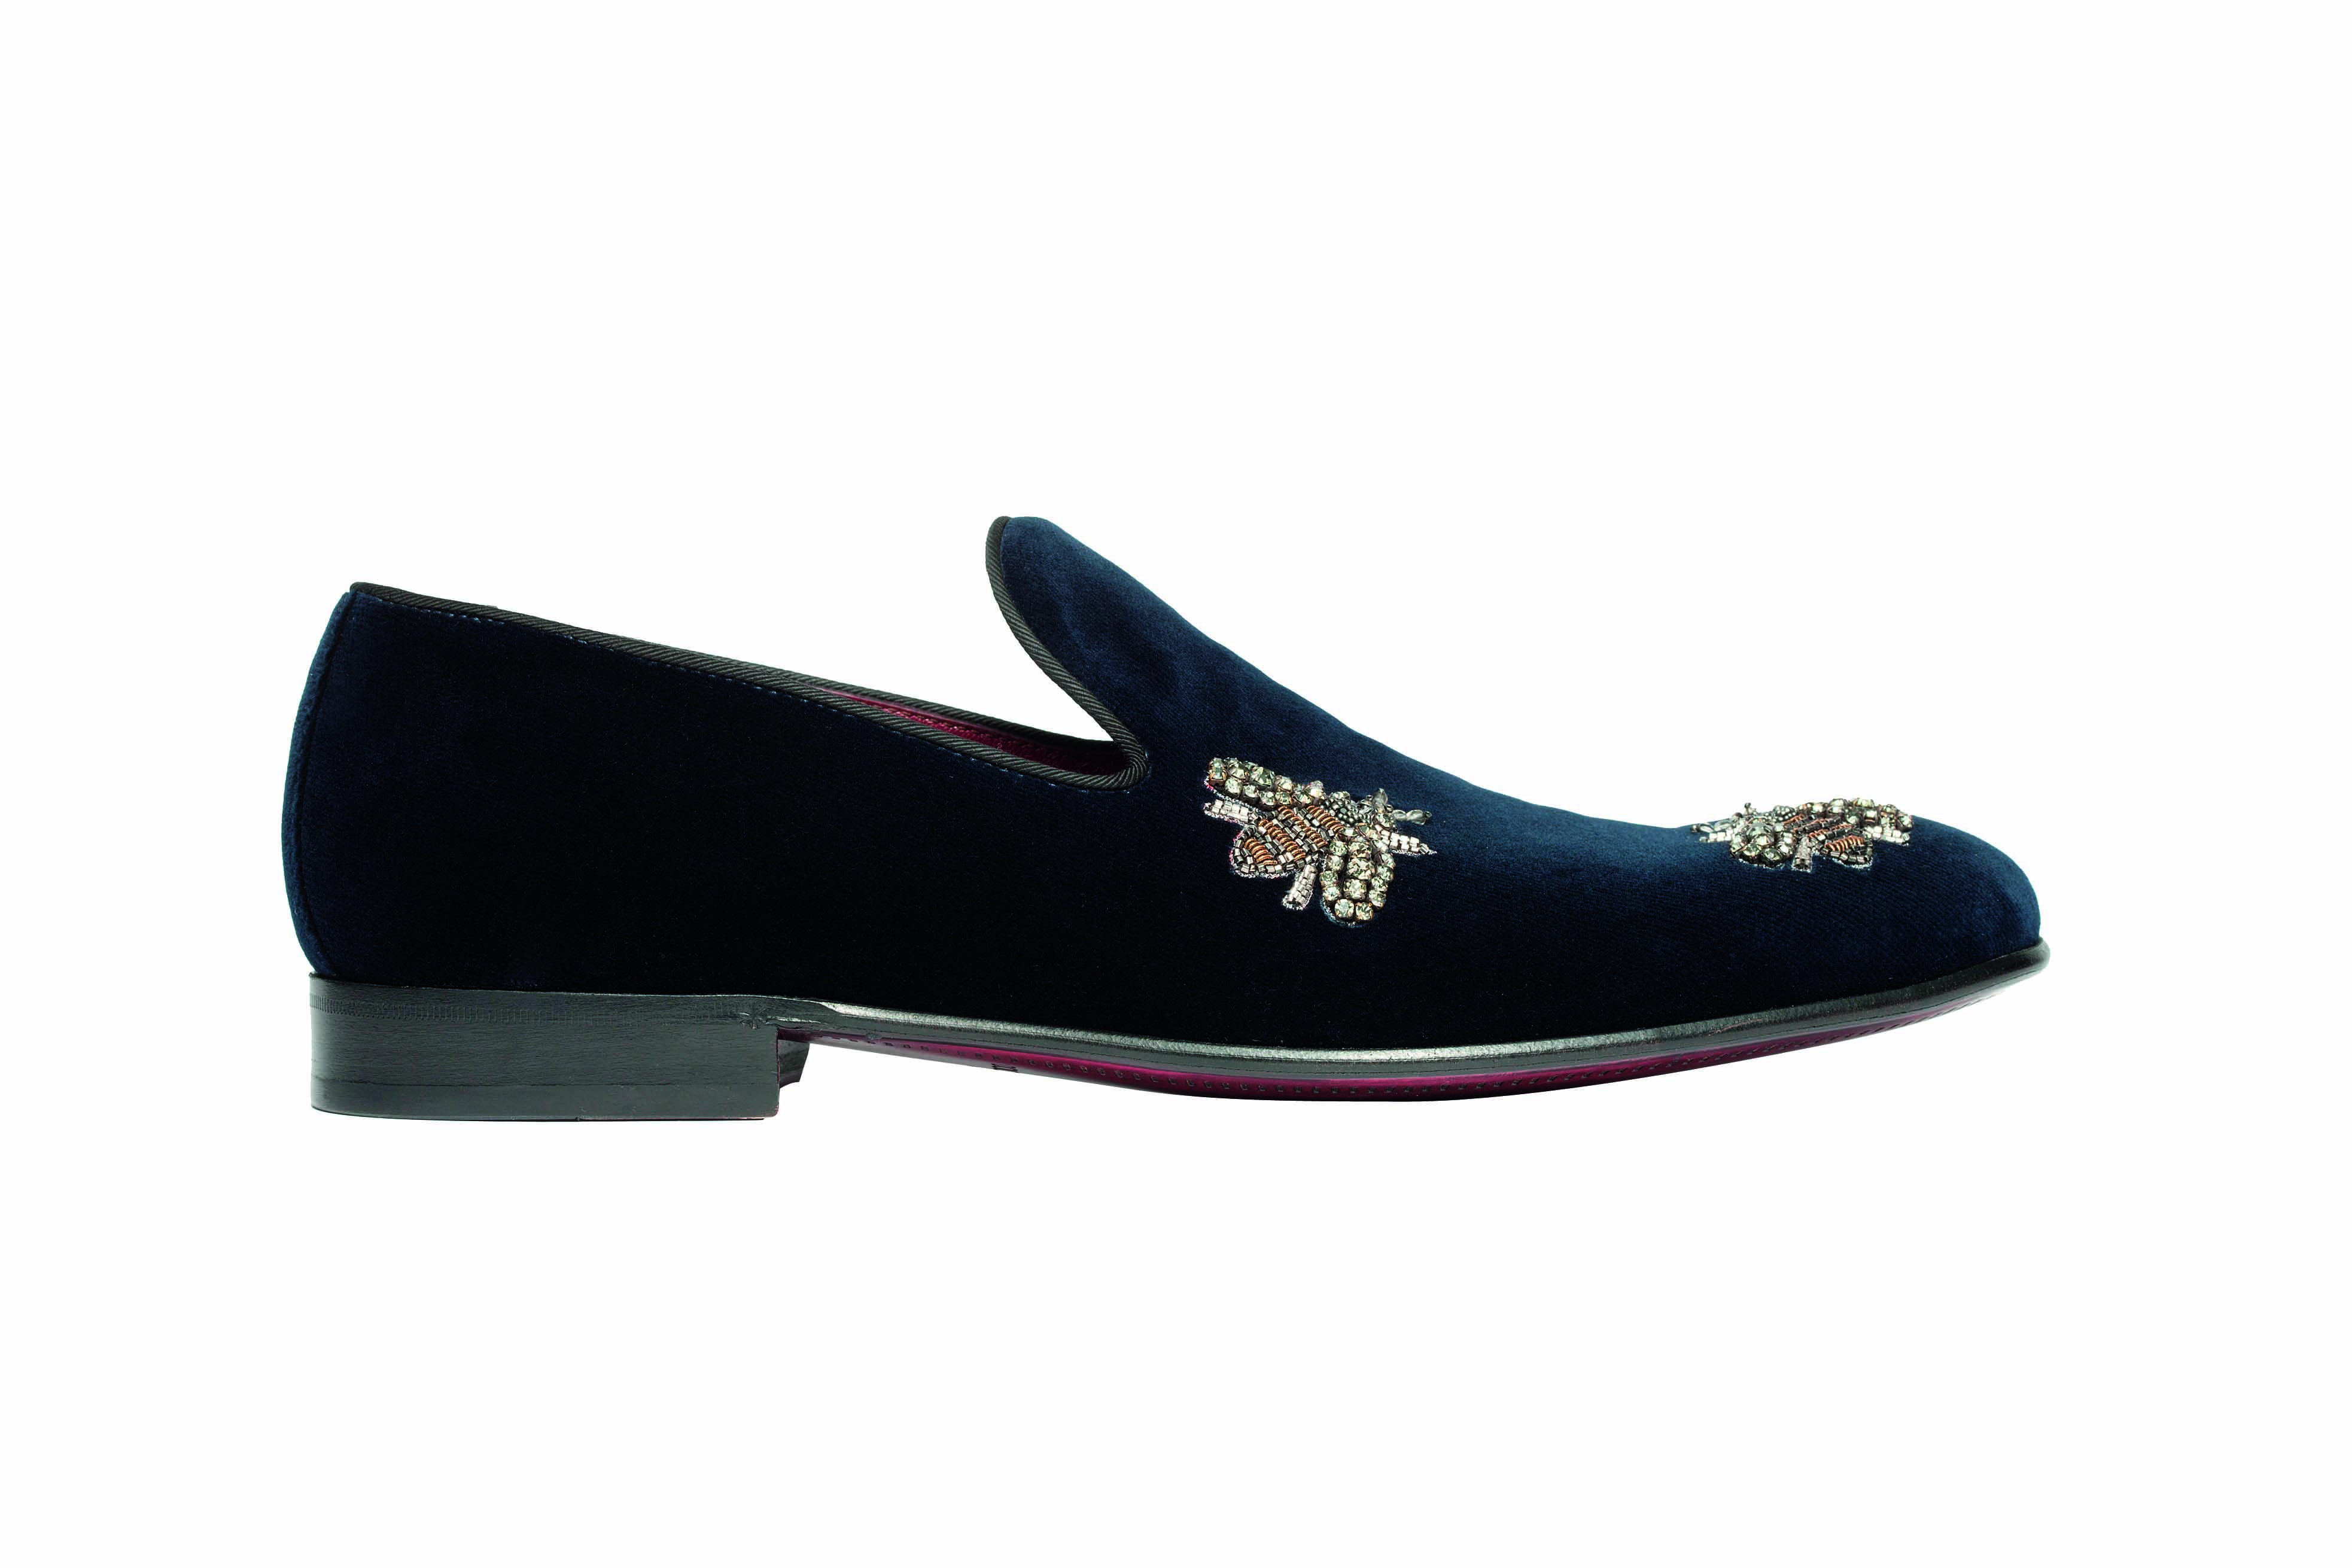 1be95906a Dolce and Gabbana Bee Loafer - Indonesia Tatler